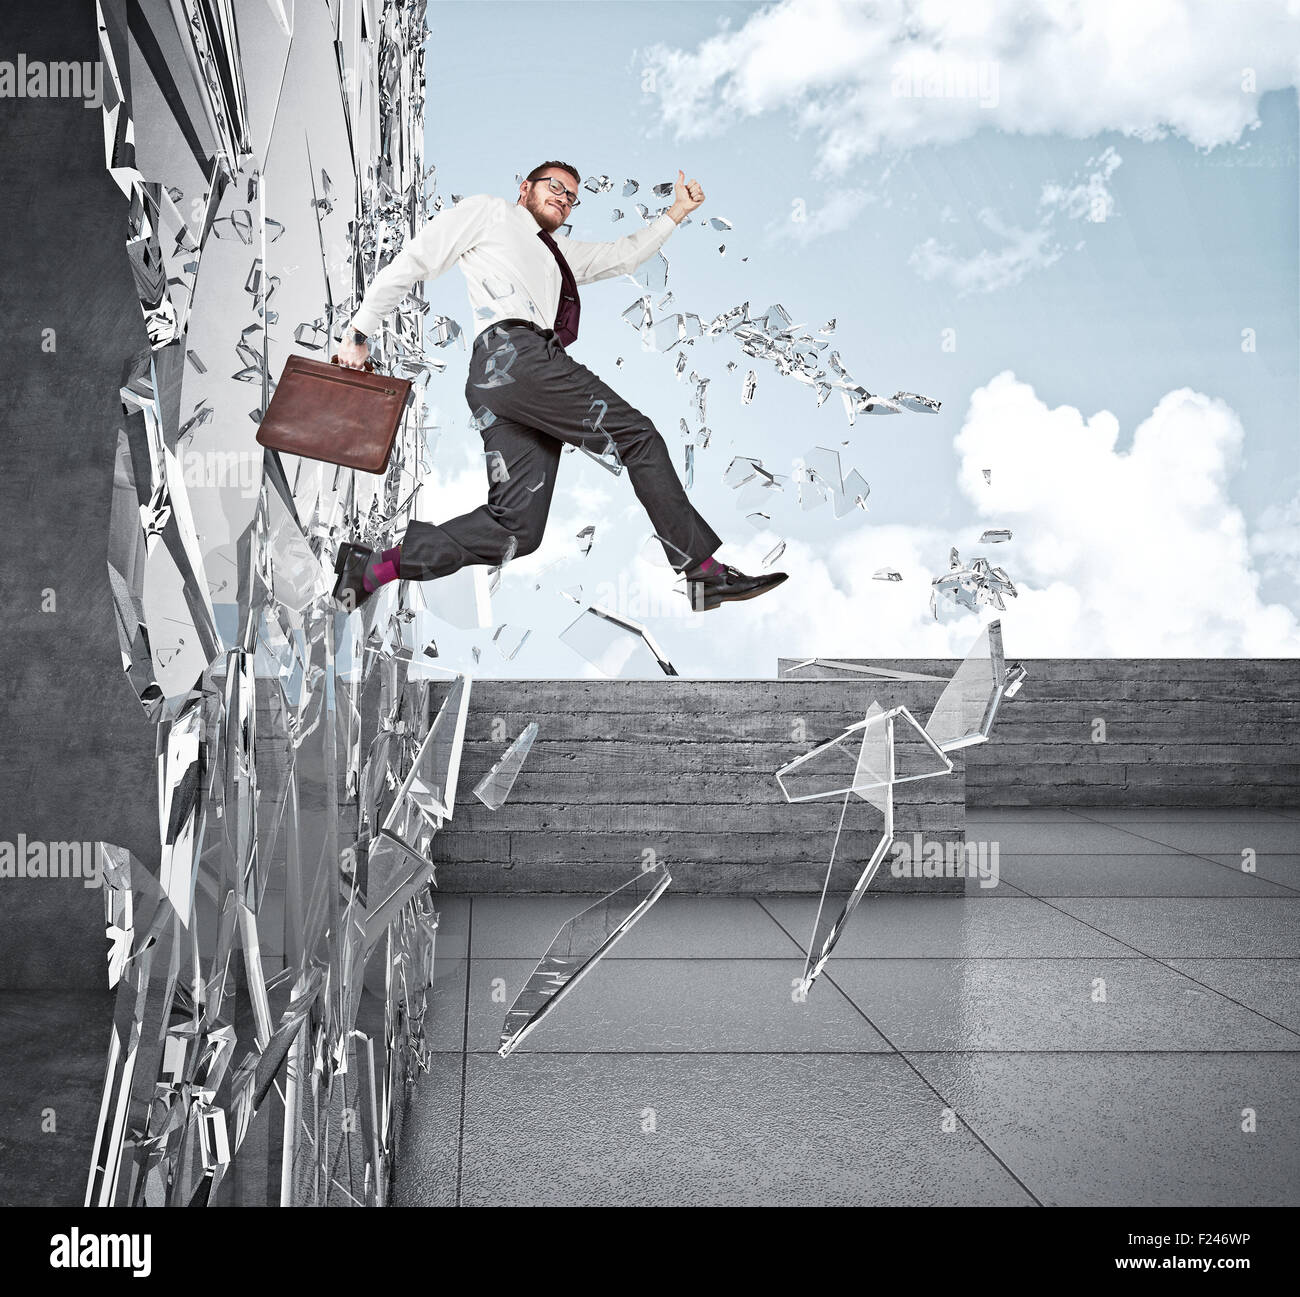 smiling businessman broke glass with jump - Stock Image